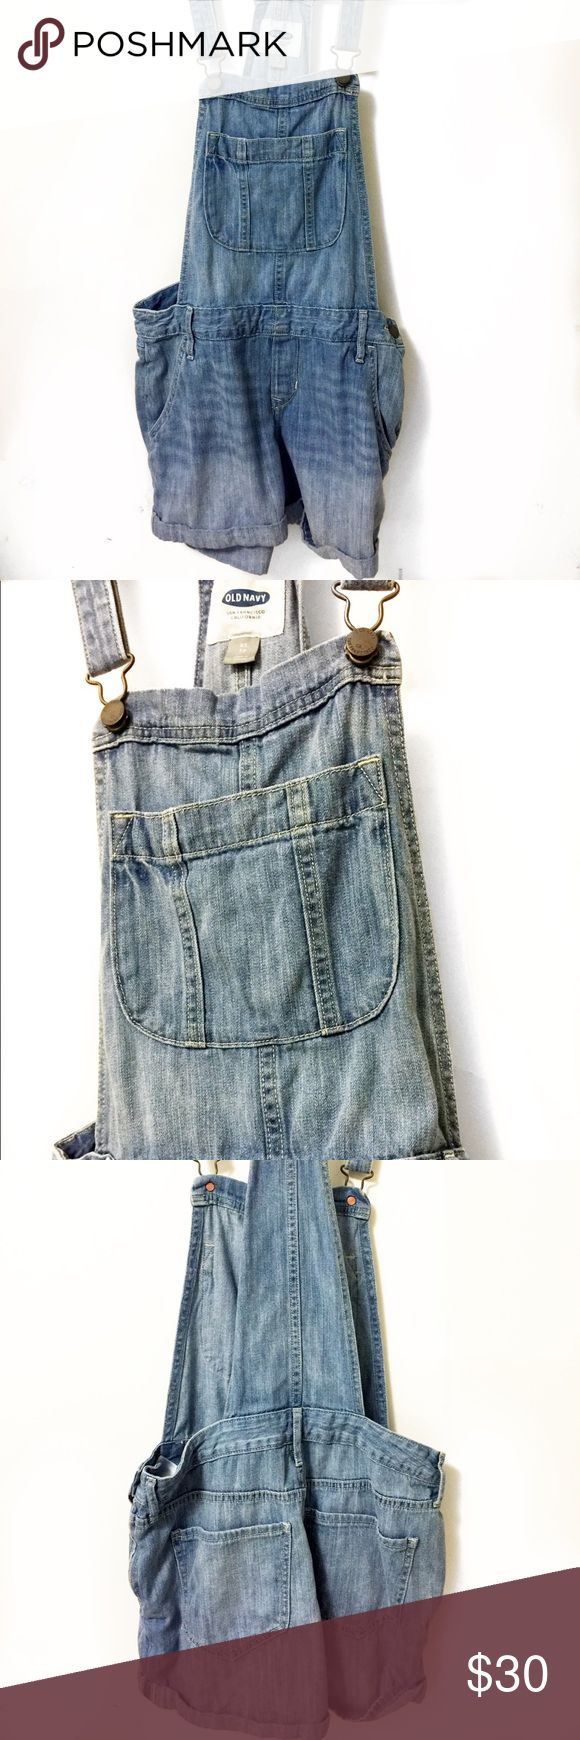 Old Navy Light Blue Jean Overall Shorts -XS Overall blue jean shorts   Good condition    Pre-owned   Brand - Old Navy   Size - XS  Hips 14.5''  Length 21''  Inseam 2'' Old Navy Jeans Overalls